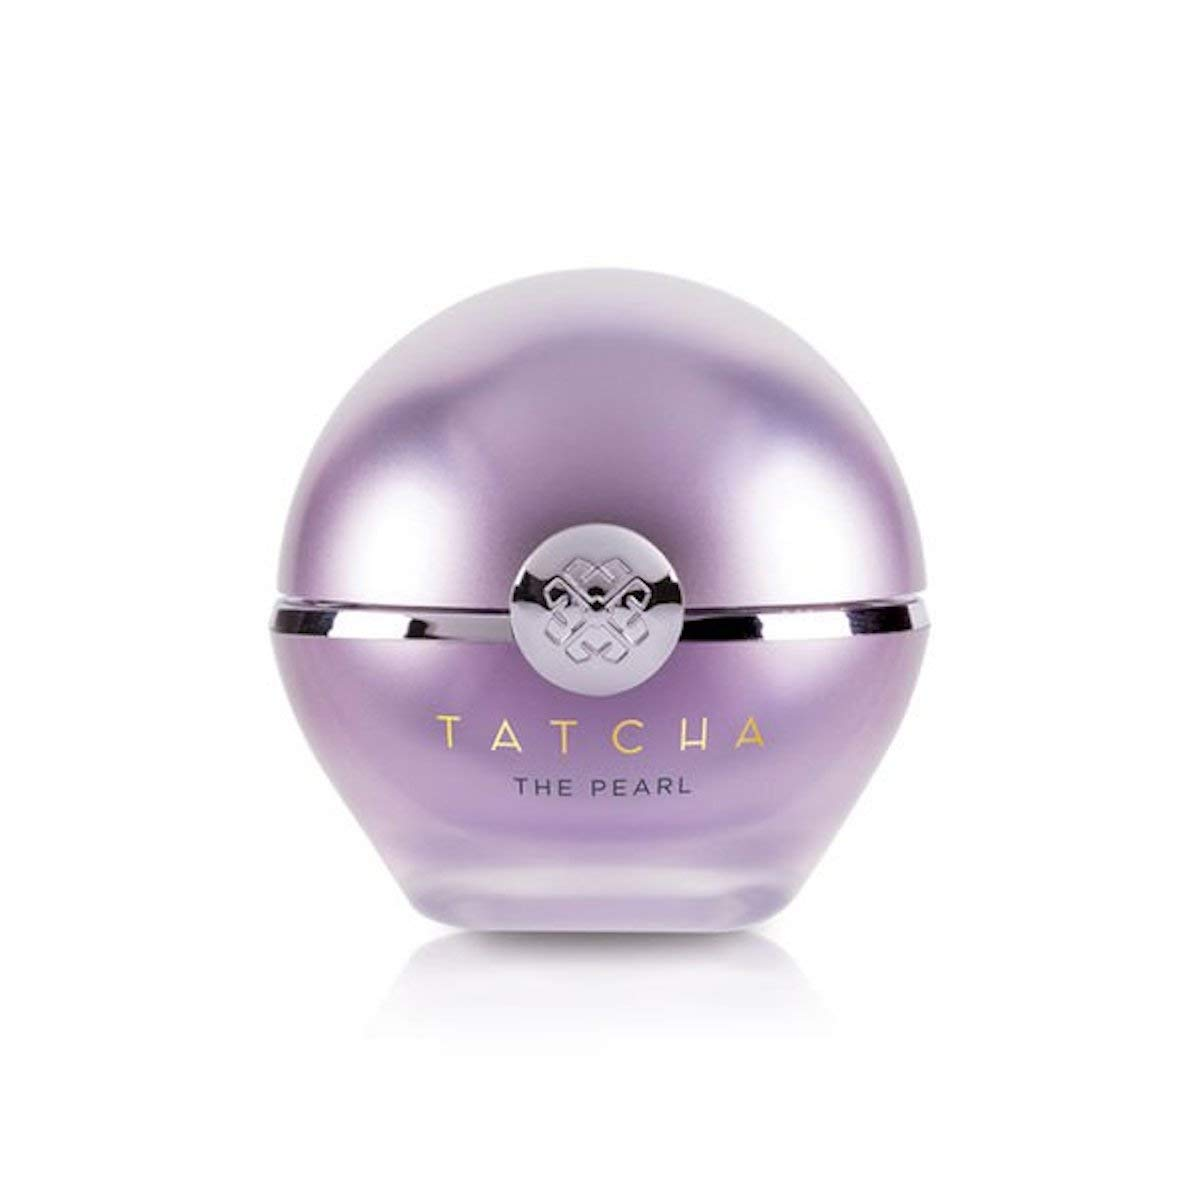 Tatcha The Pearl Tinted Eye Illuminating Treatment in Softlight - 13 milliliters / 0.4 ounces by TATCHA